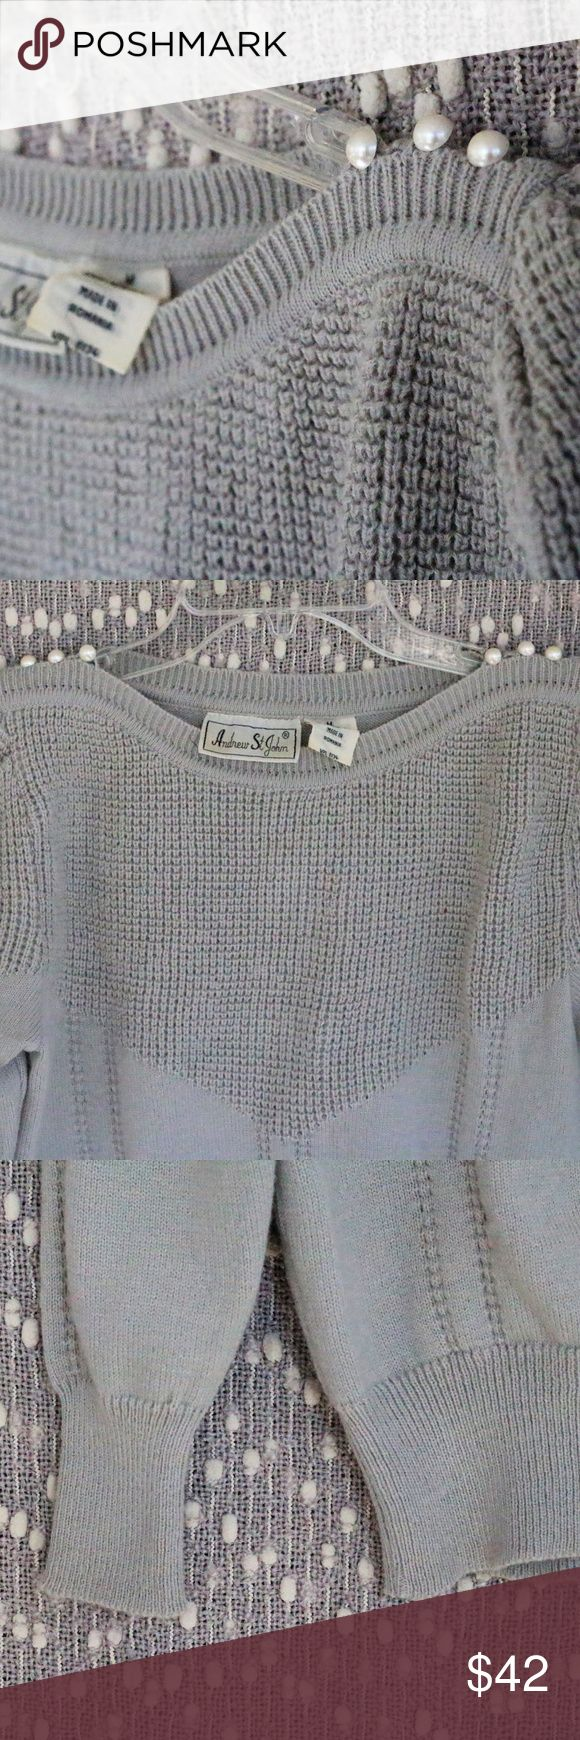 Woman's Vintage 1970's Sweater Size Medium *Brand: Andrew St. John *Size: Woman's Vintage Medium / Modern Size Small *Color: Light Gray *Pearl Buttons on Shoulders  This item is in PRISTINE condition, meaning NO damage of ANY kind. Item is ORIGINAL and has NOT been altered in ANY way.   Questions or comments? Send them my way! I am more than happy to chat with you. Andrew St. John Sweaters